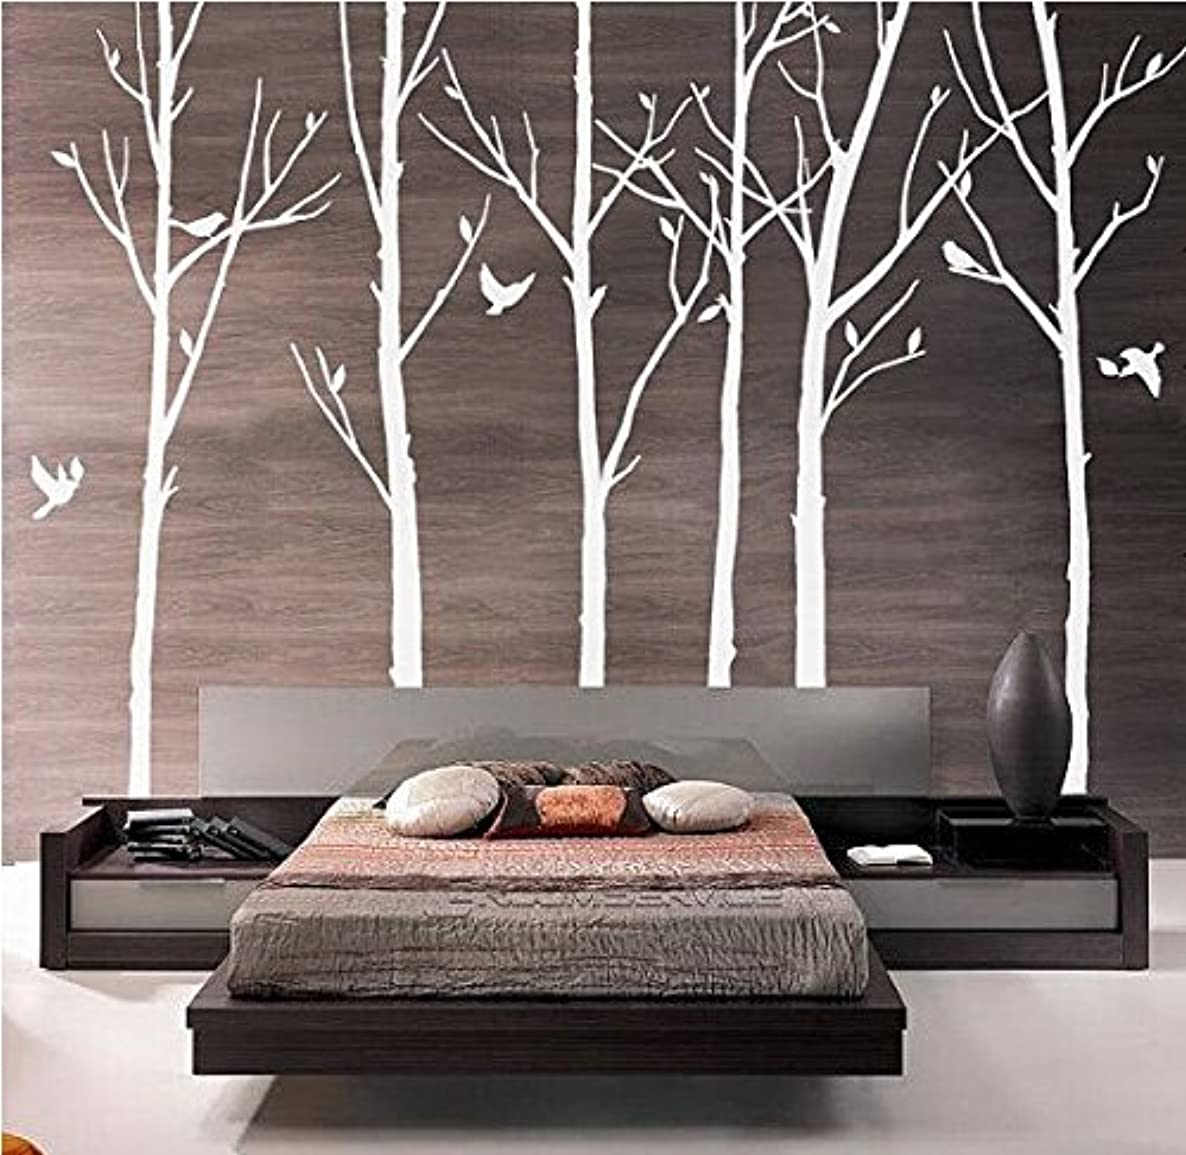 Set of 6 Tree Branch Wall Decal Birch Tree Wall Decal with Birds White Tree Wall Decal Nursery Wall Stickers Tree for Living Room